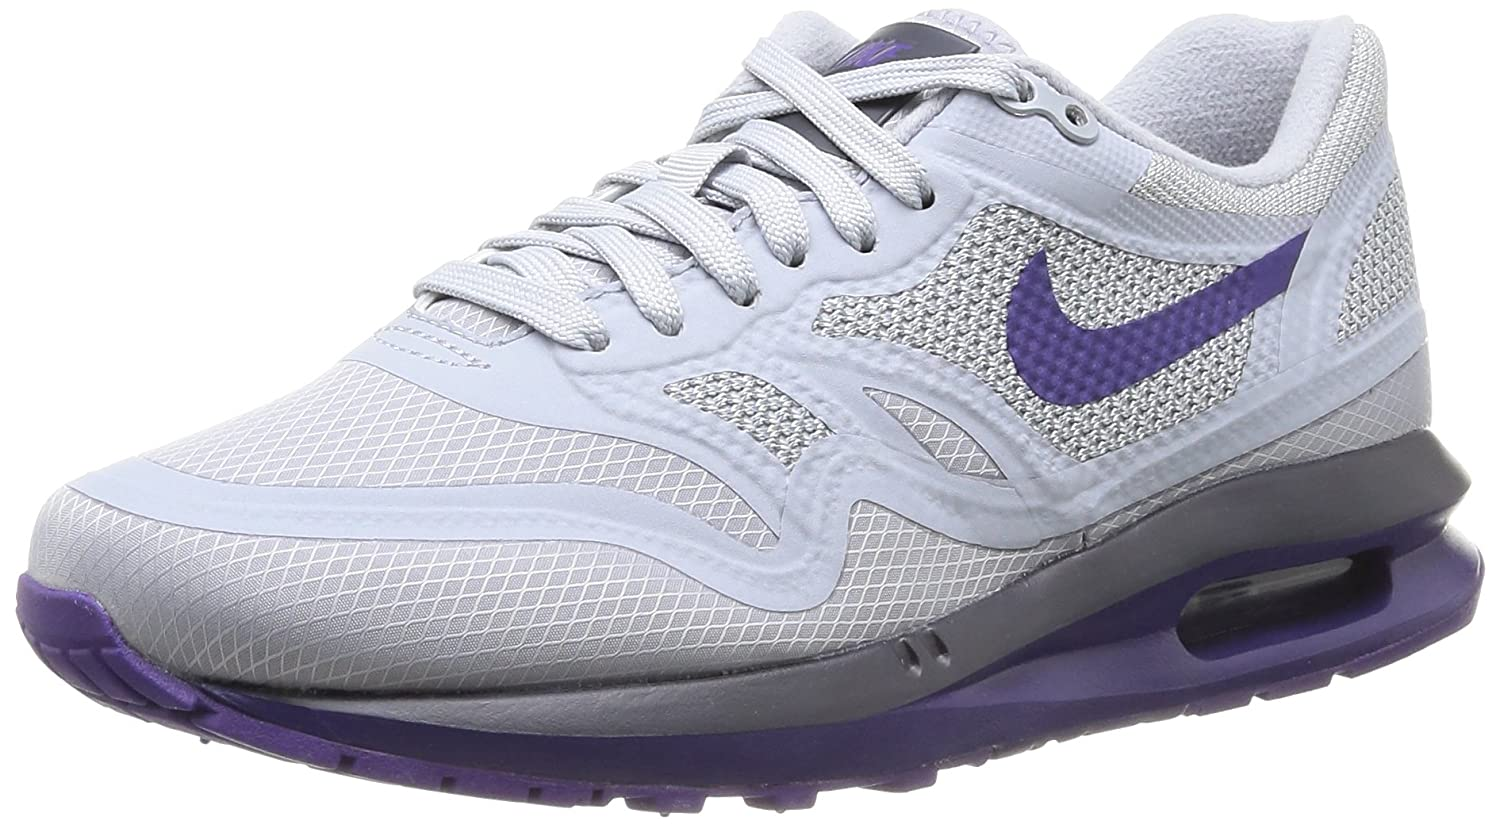 newest 45983 0d16d Amazon.com  Nike Air Max Lunar 1 Wr Running Womens Shoes Size 10  Shoes